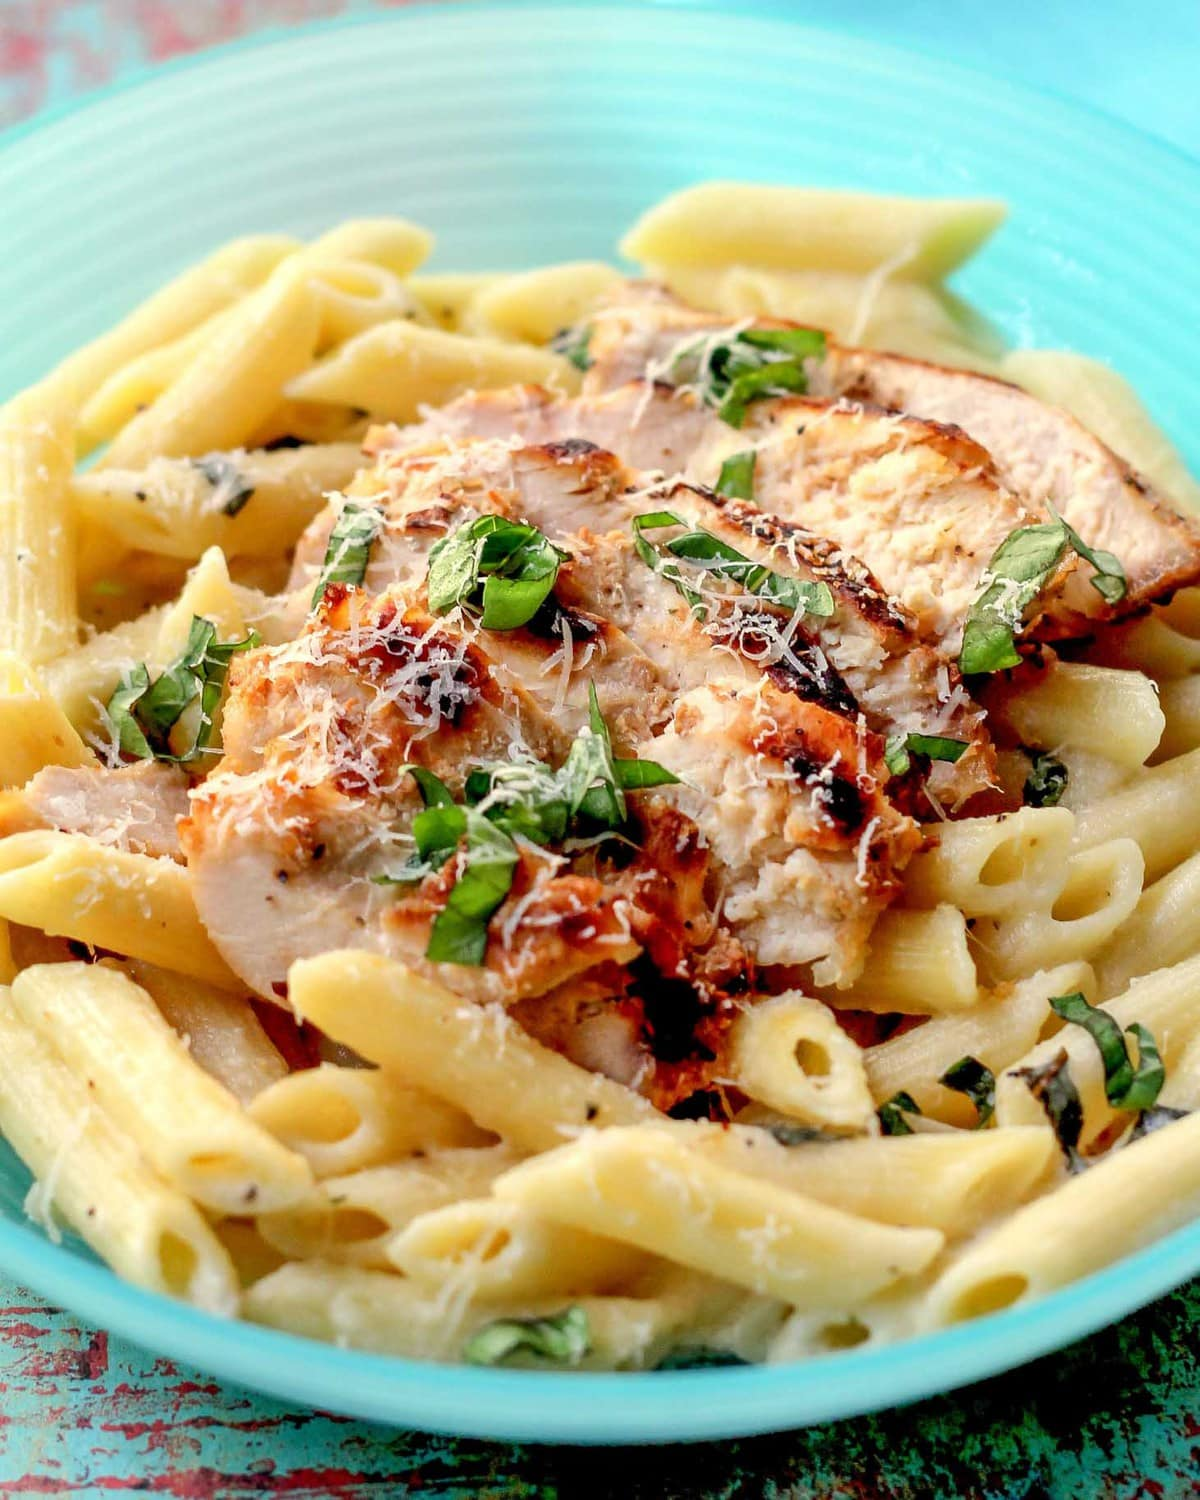 Lemon Chicken and Pasta